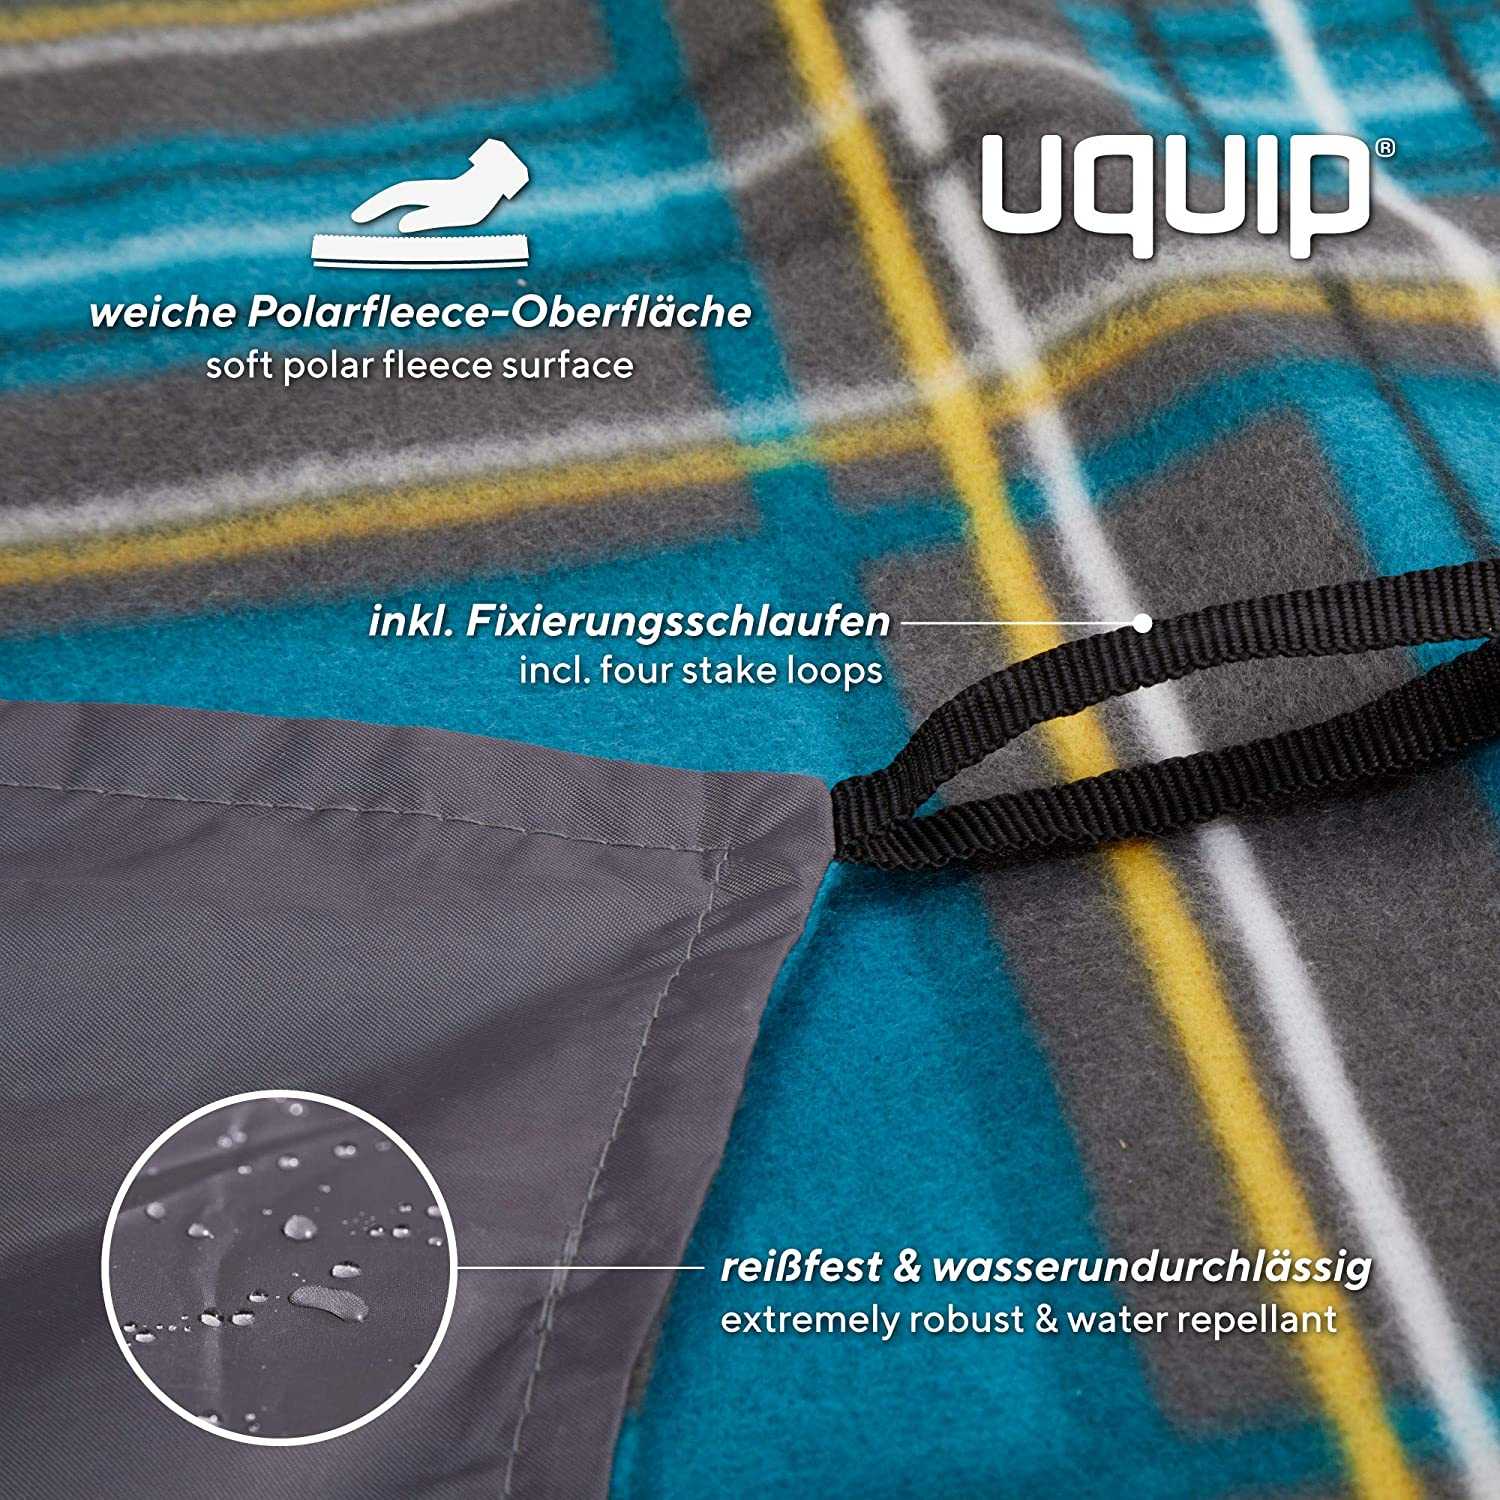 Uquip Scotty Outdoor Picnic Blanket – Different Sizes – Blue Yellow